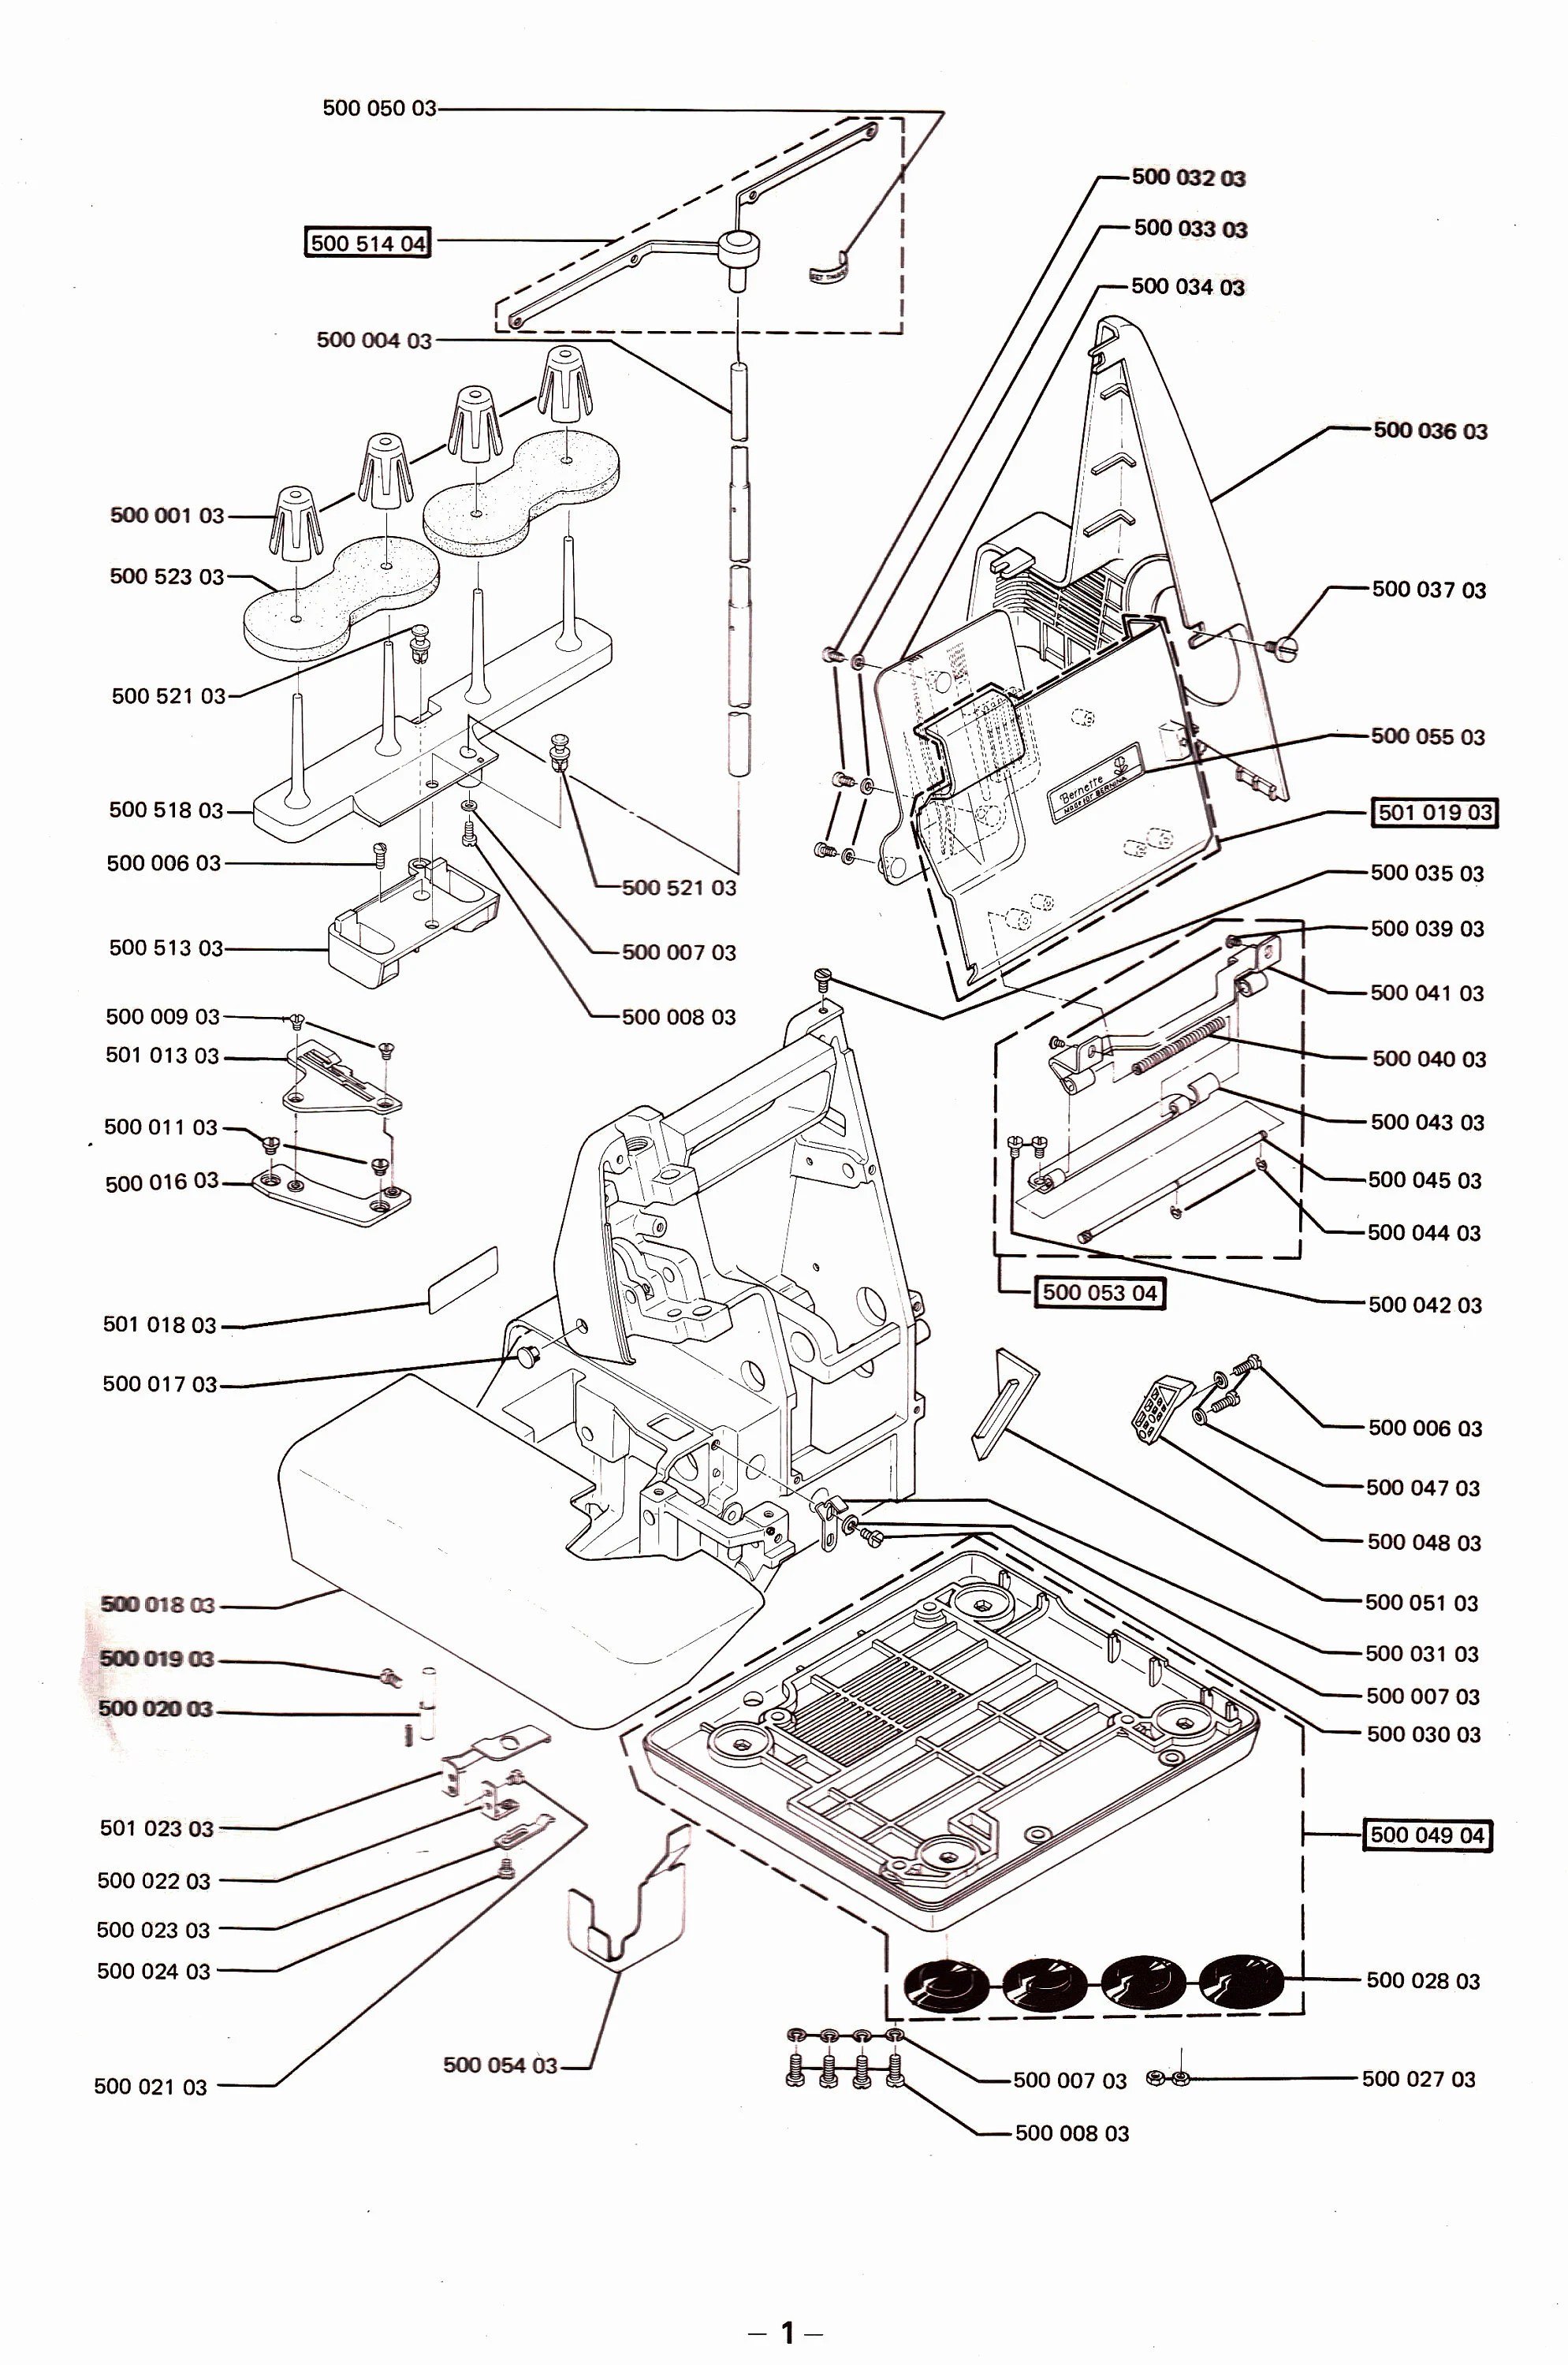 Bernette MO-234 Serger Instruction / Operating manual